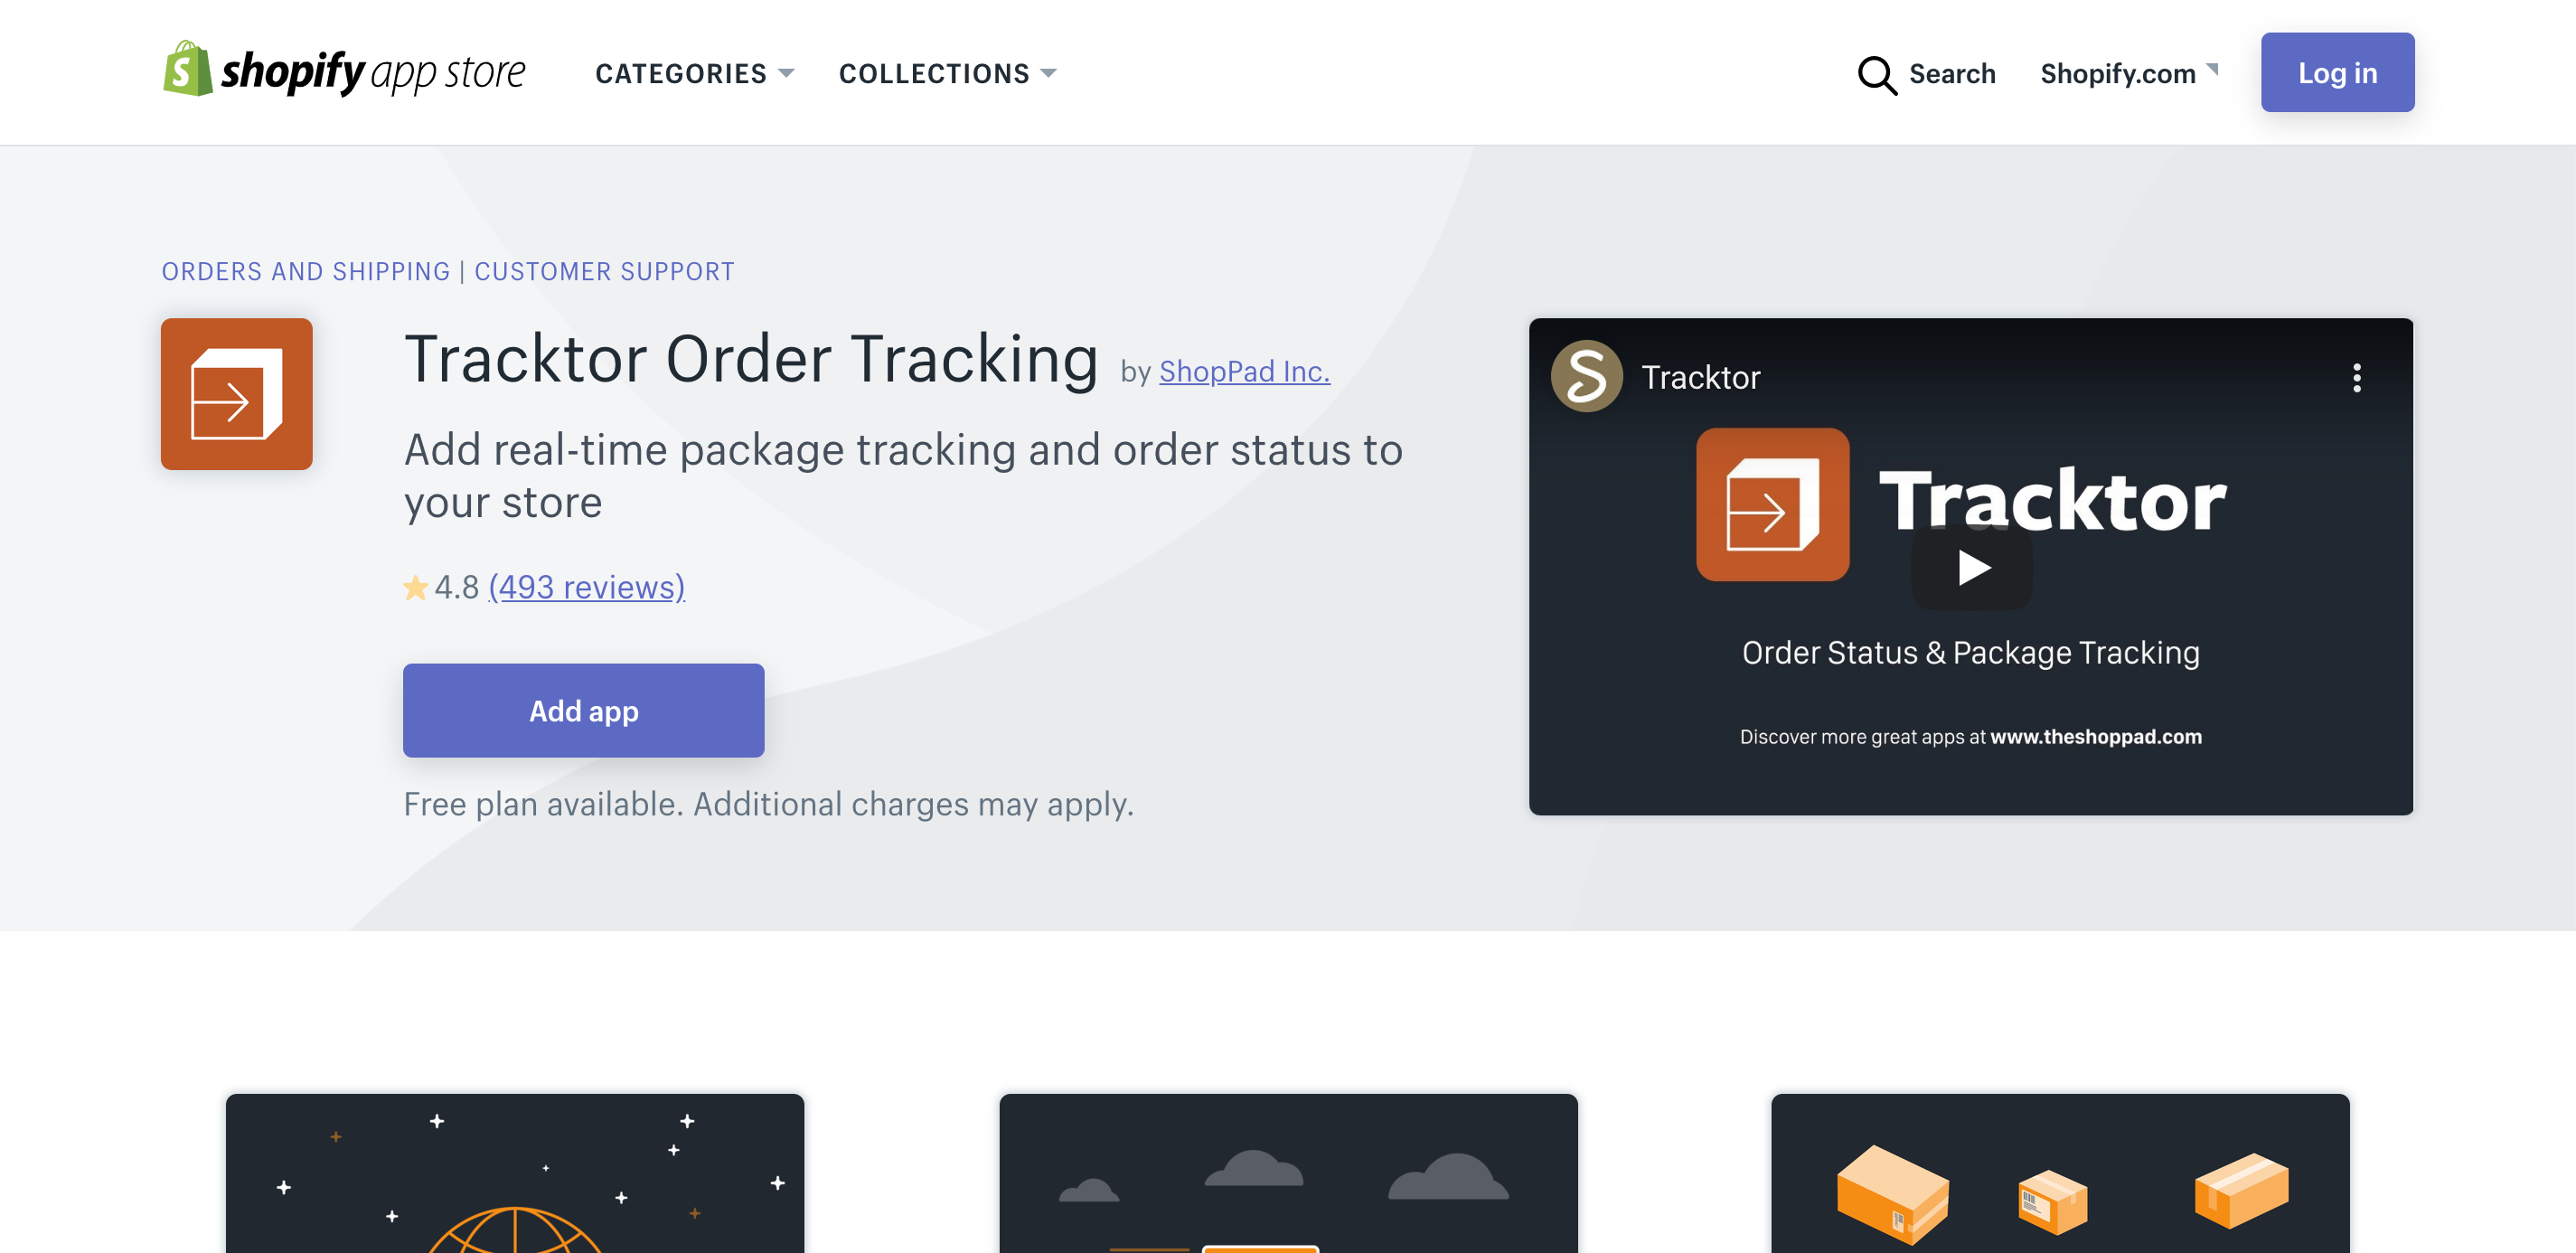 Tracktor-Order-Tracking